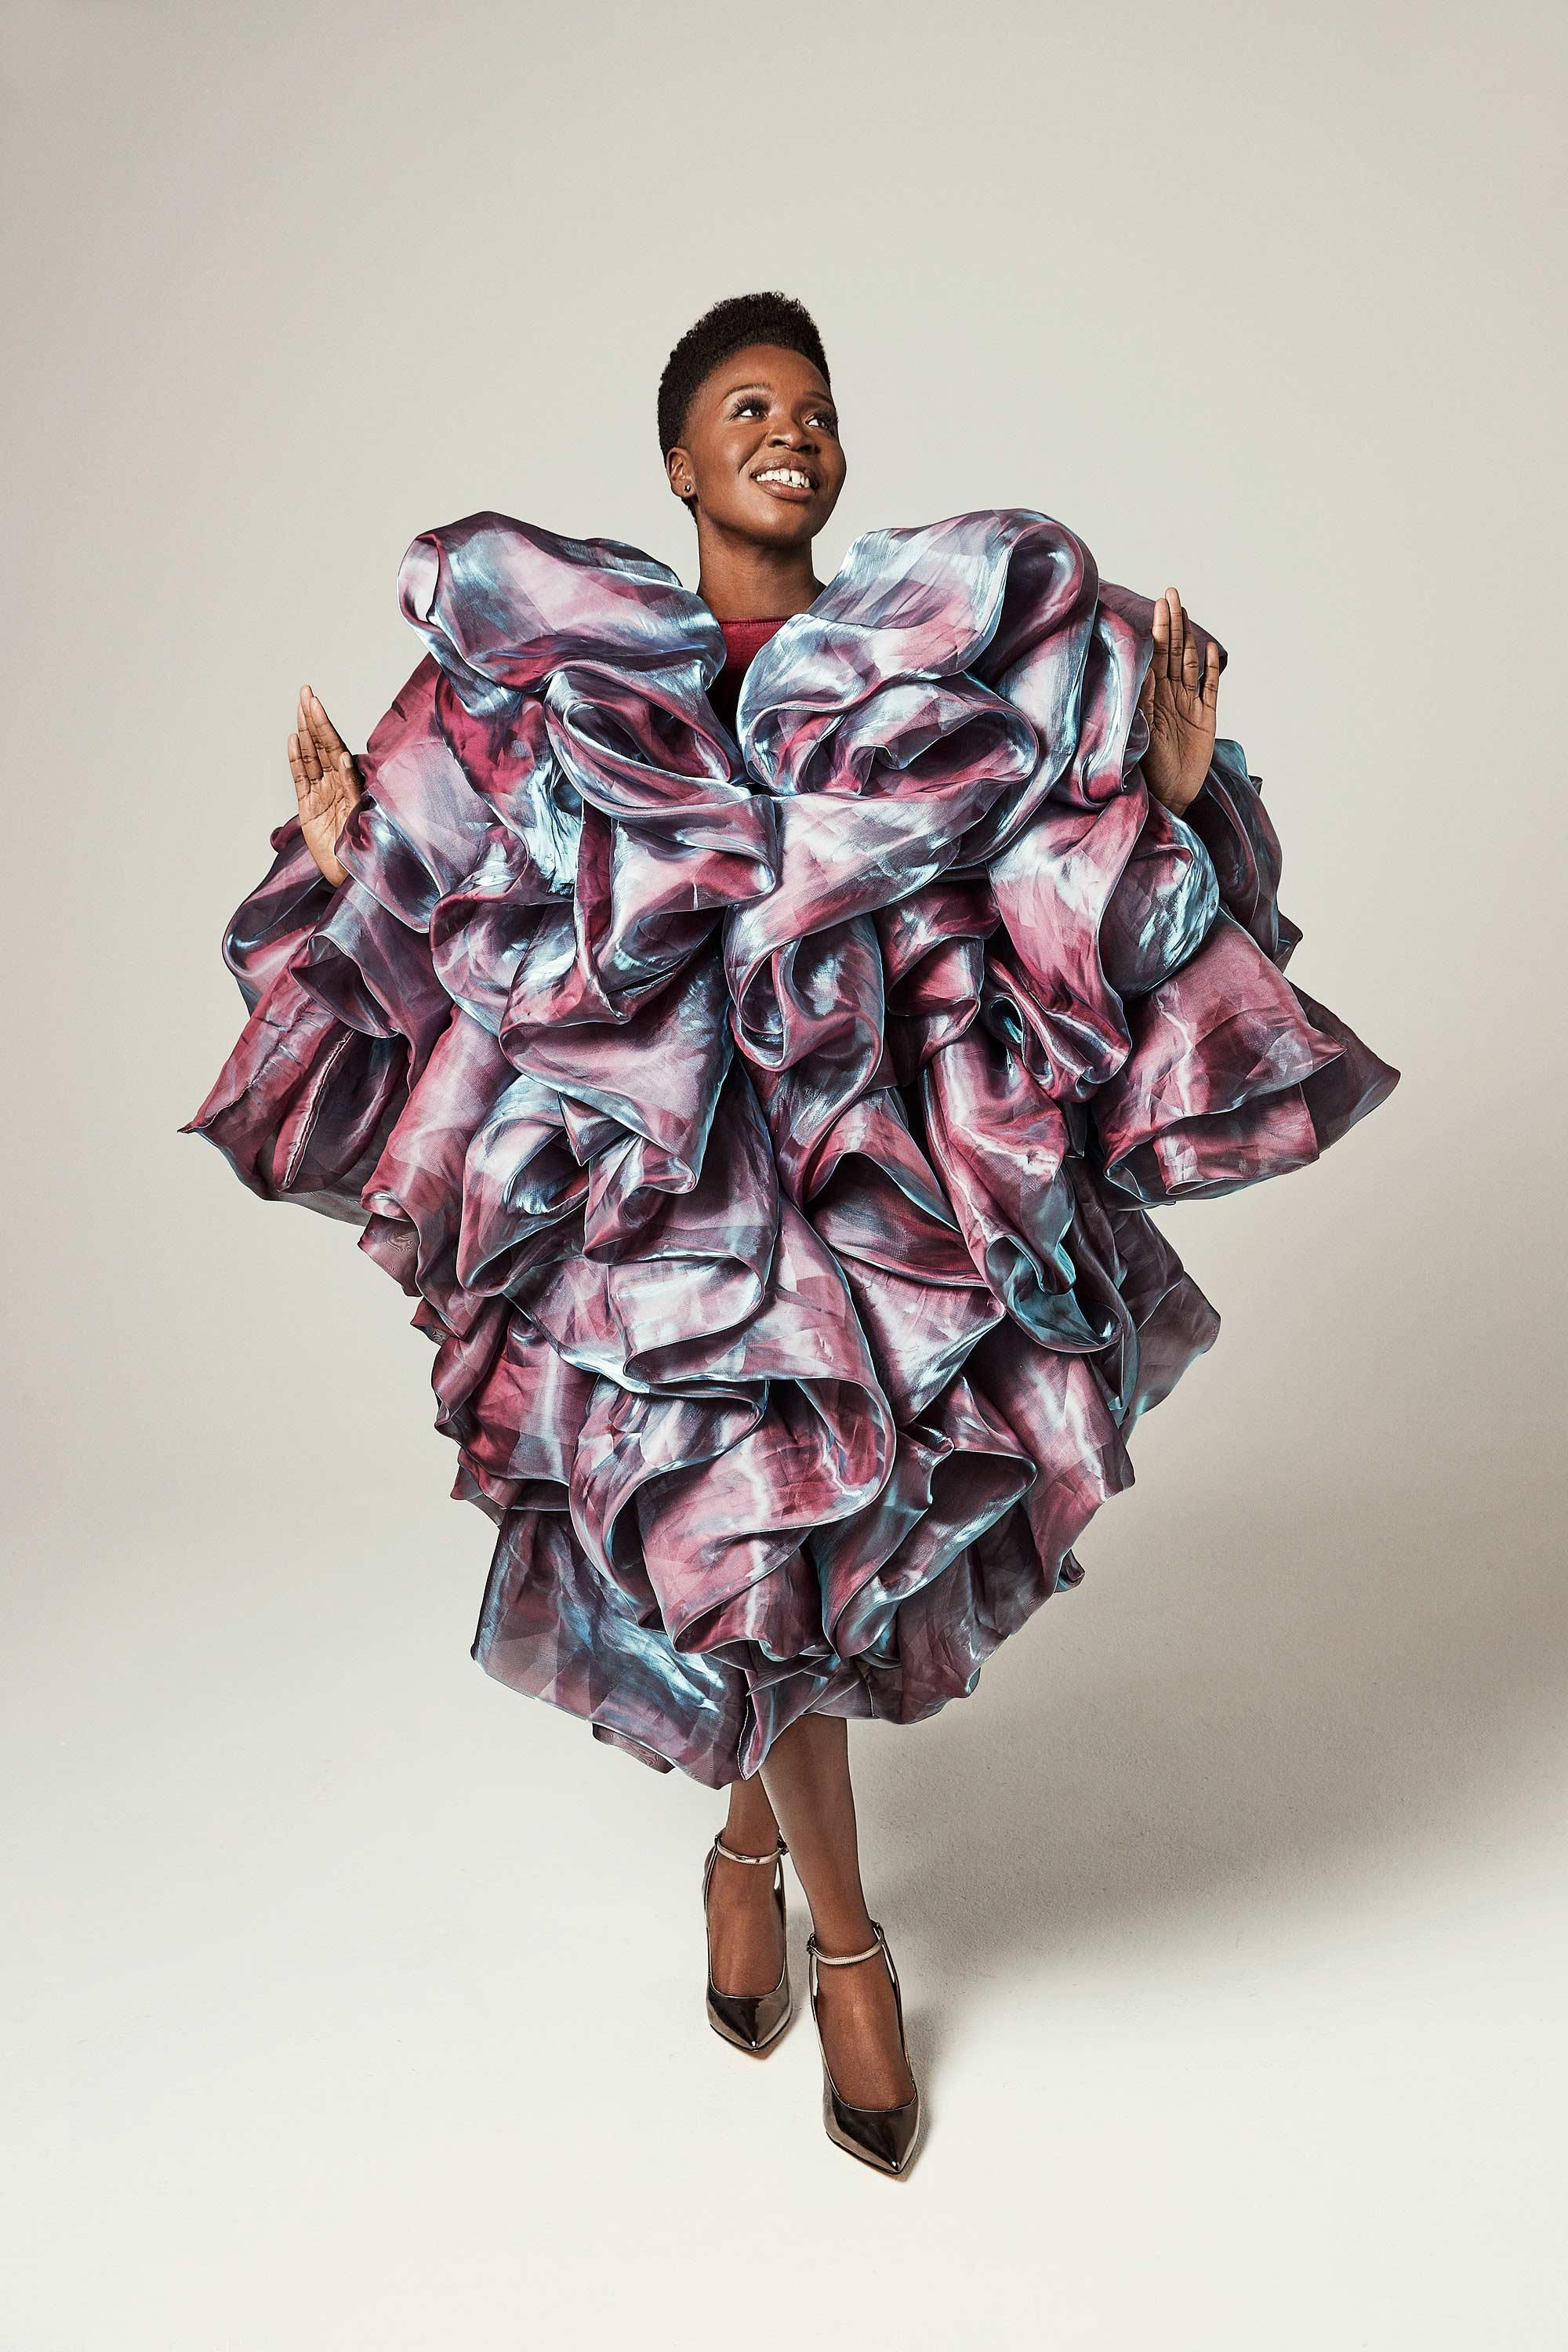 Folake Olowofoyeku in a lavishly ruffled iridescent dress